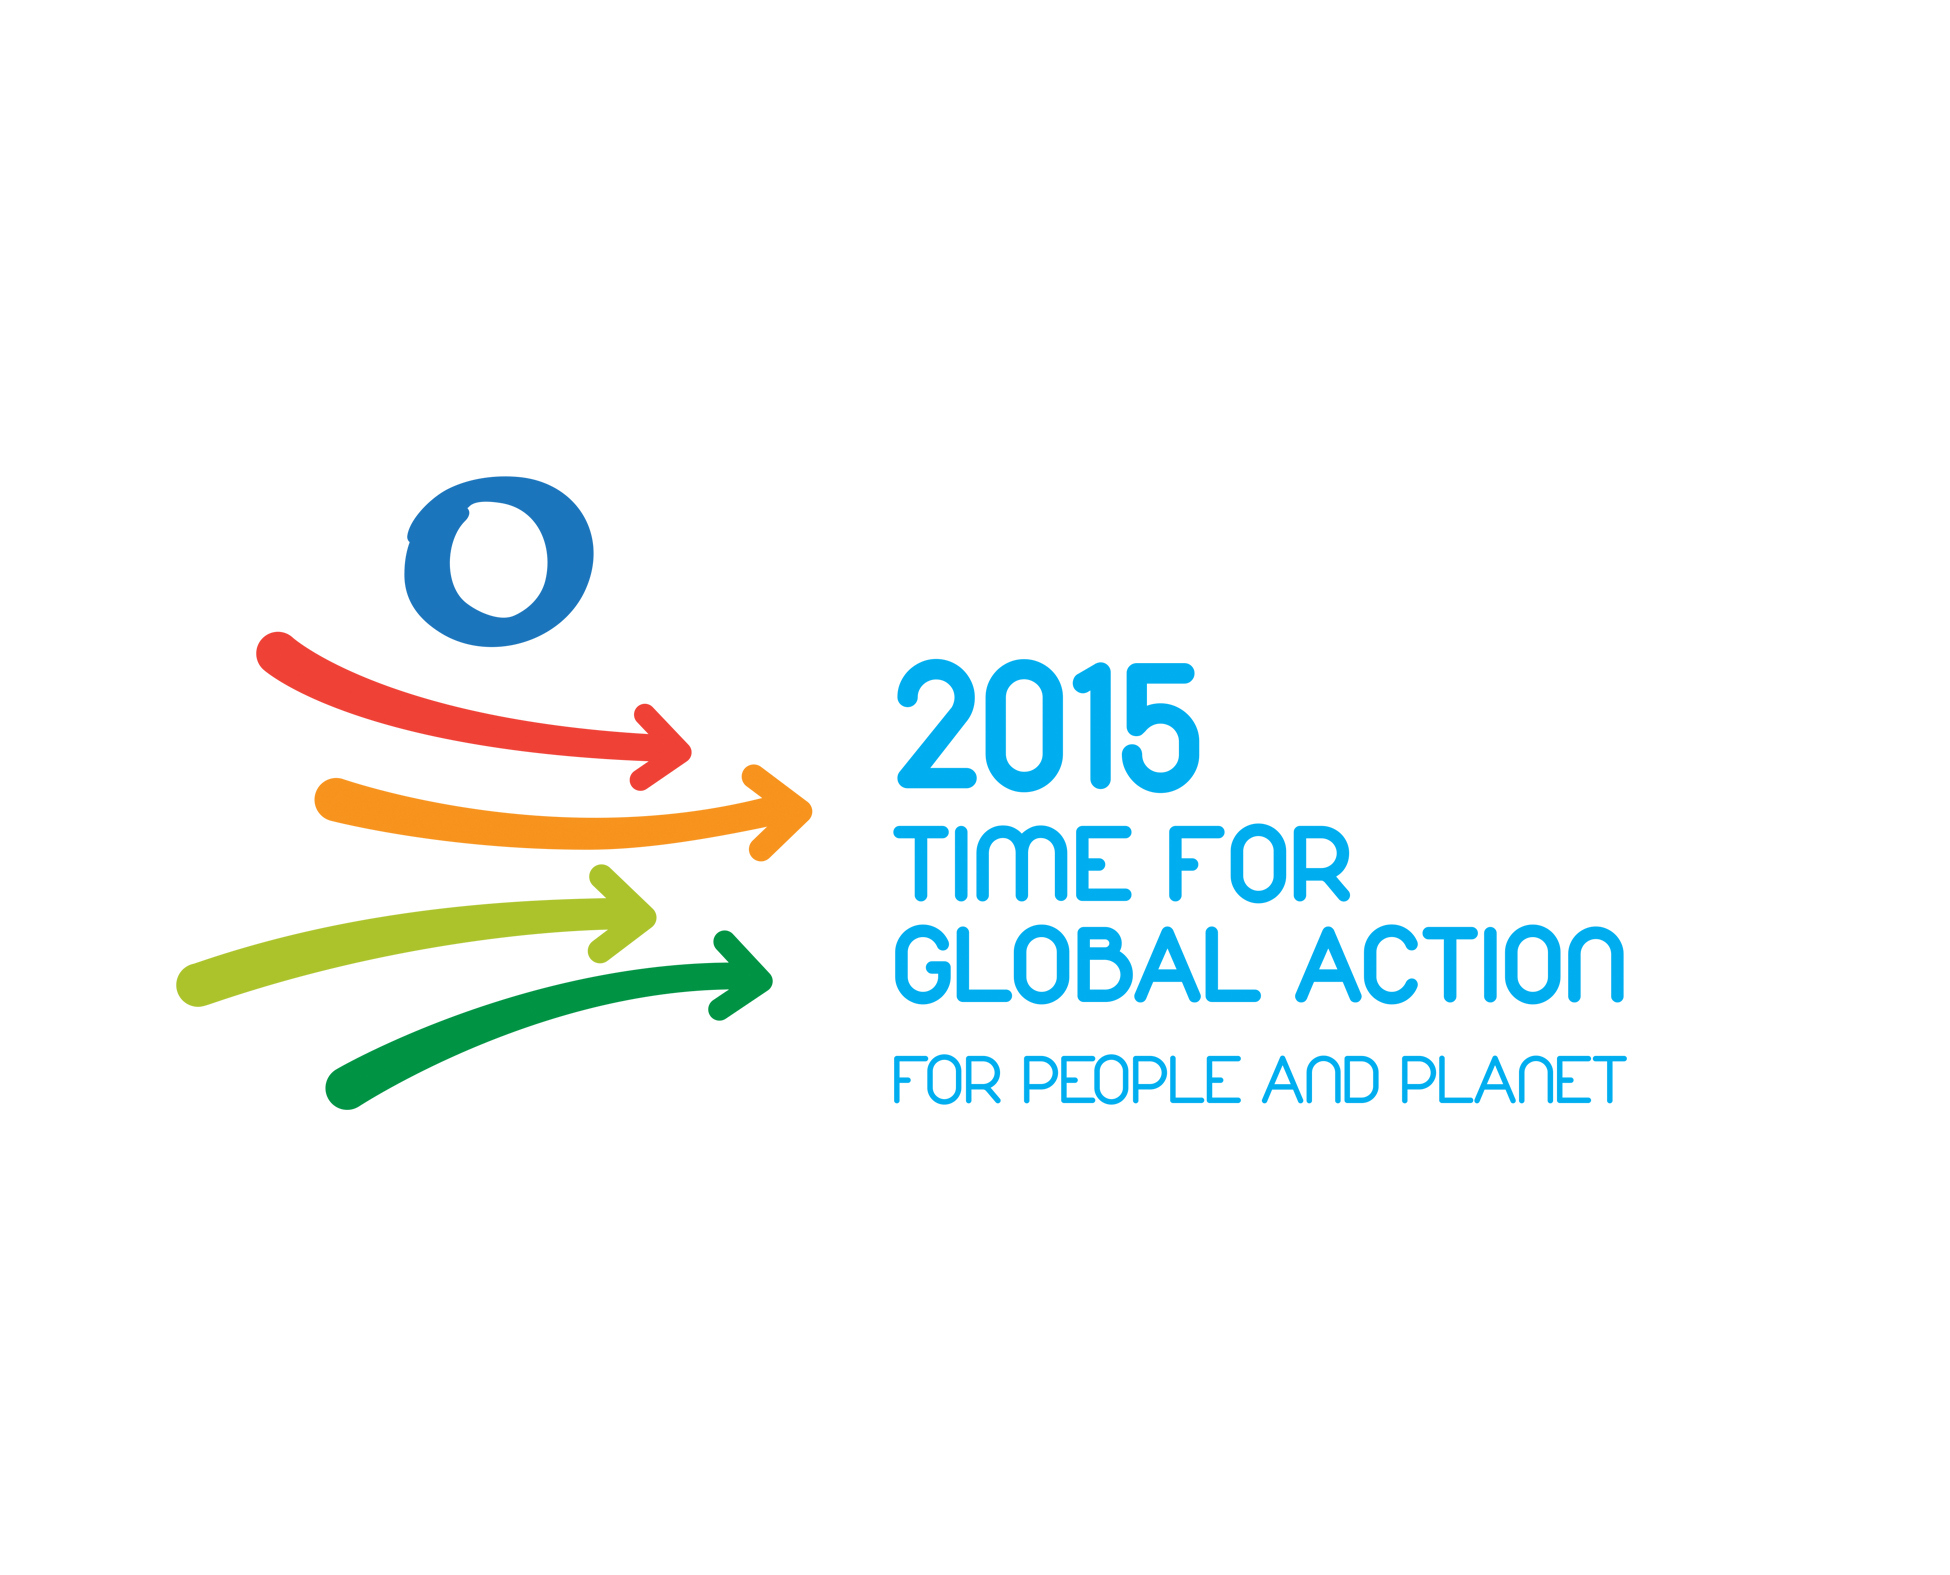 2015-Time-for-Global-Action_English.jpg